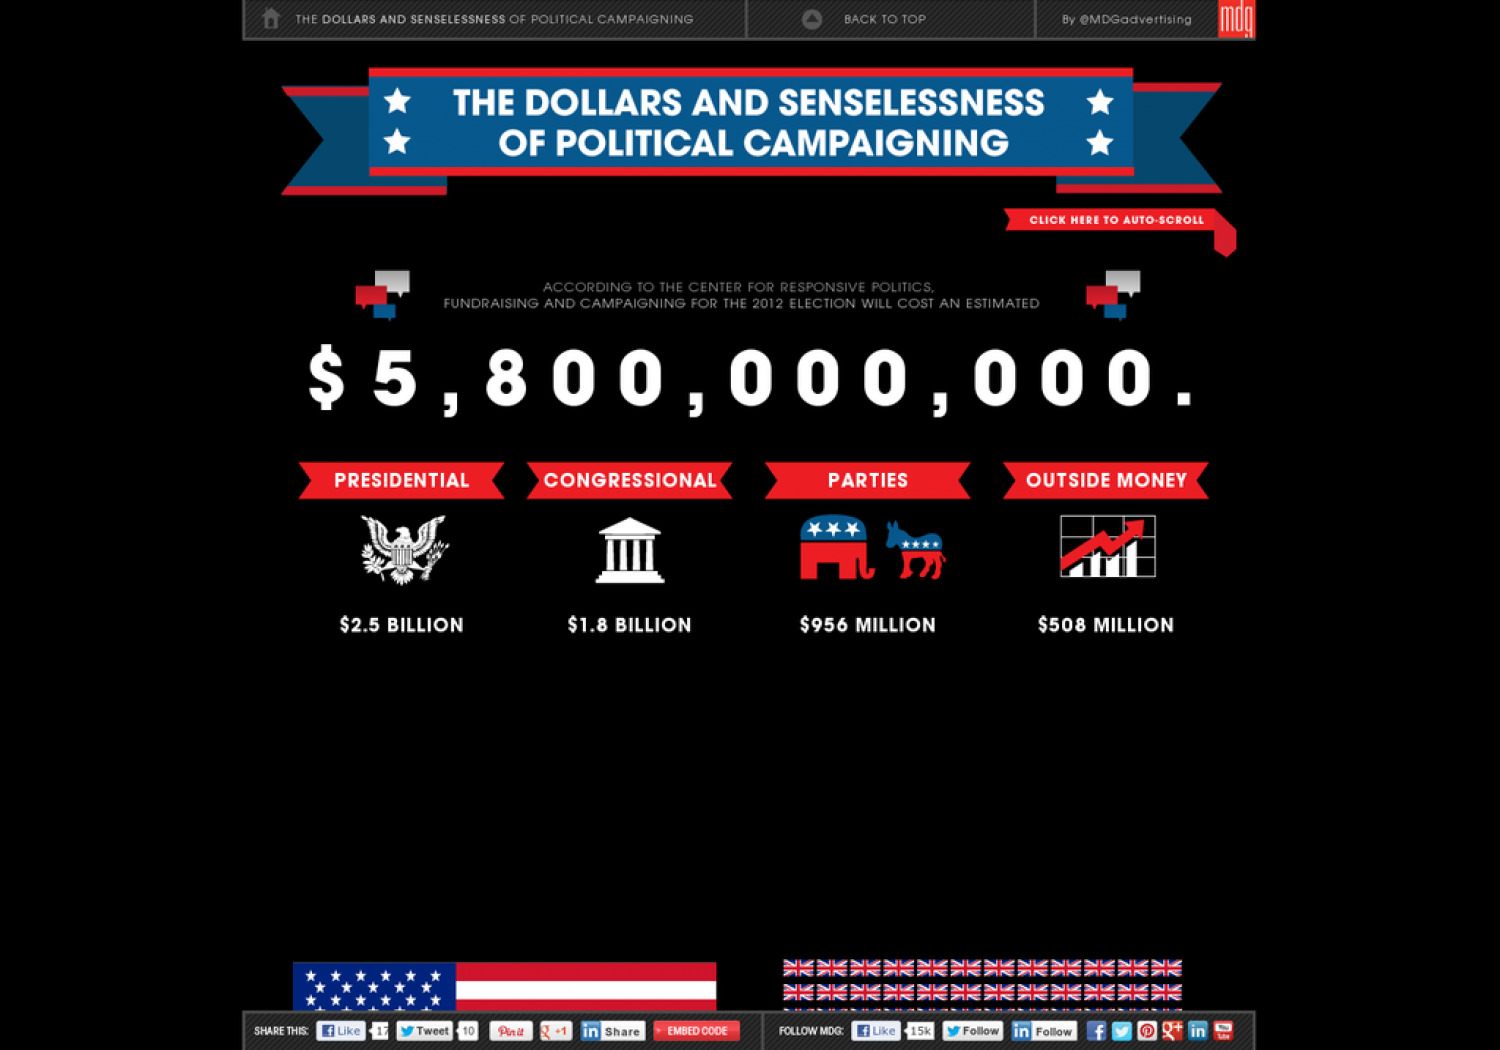 The Dollars and Senselessness of Political Campaigning Infographic